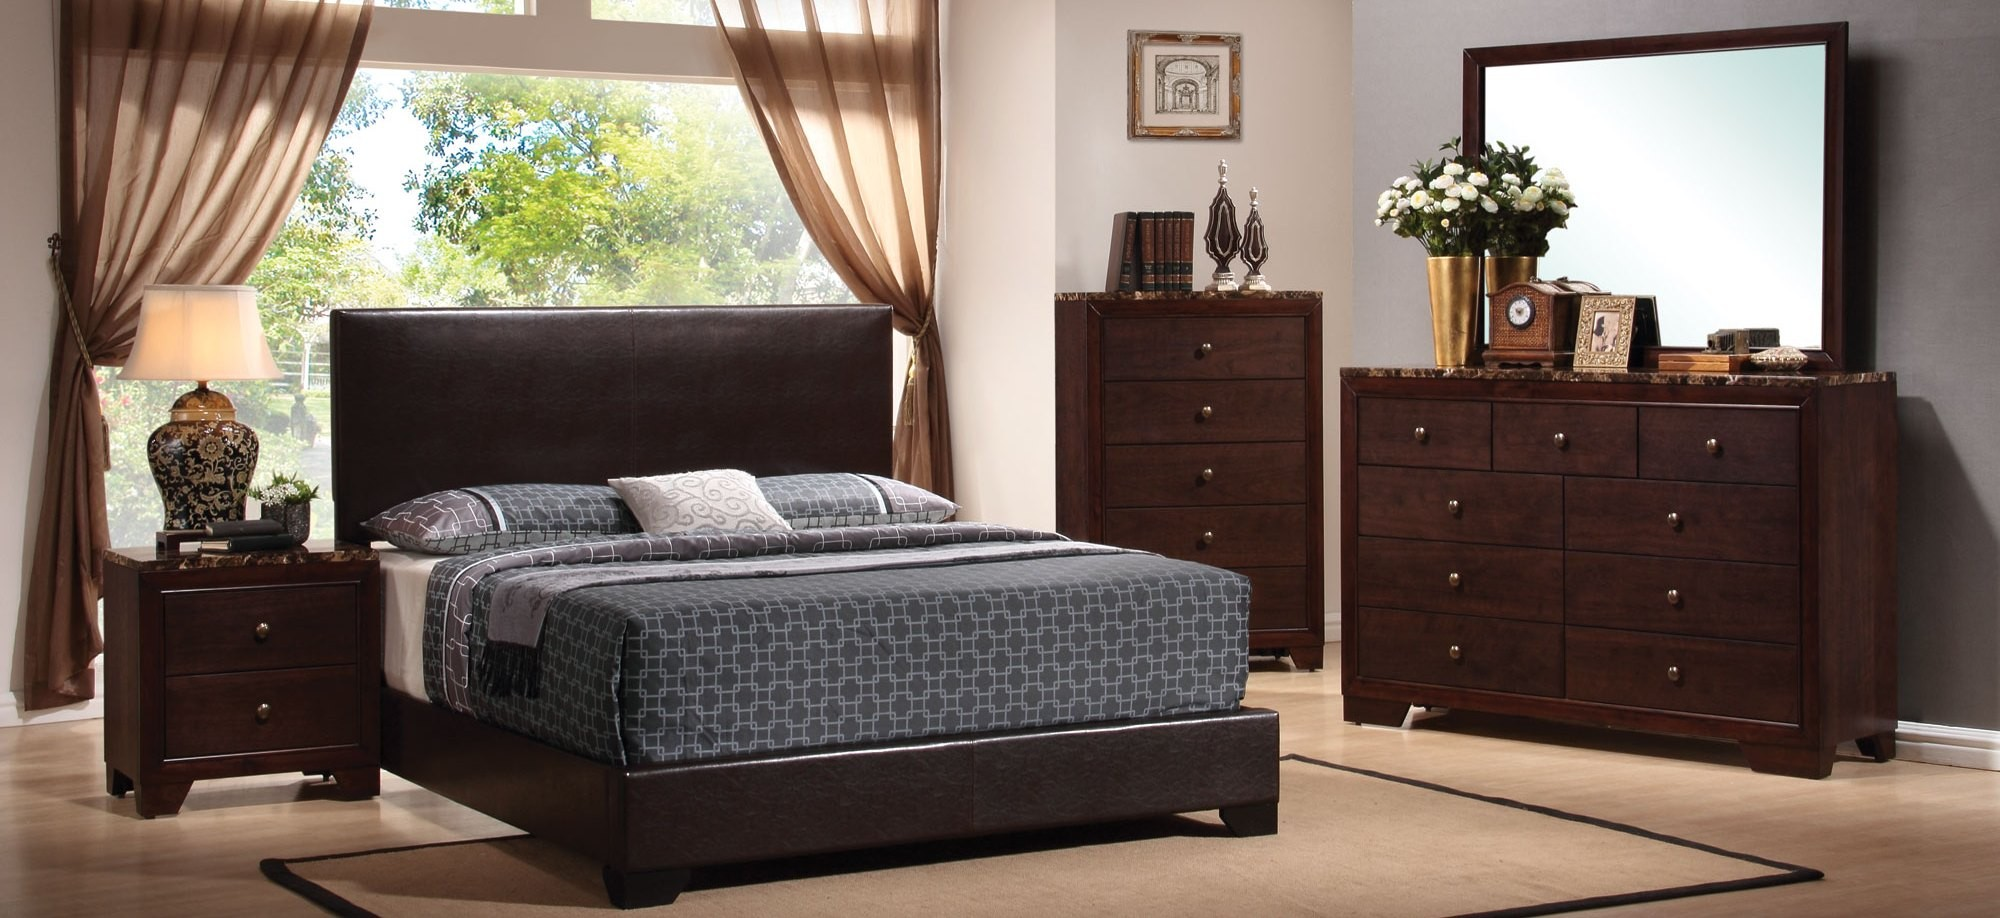 Low Price Bedroom Furniture Sets Conner Black Youth